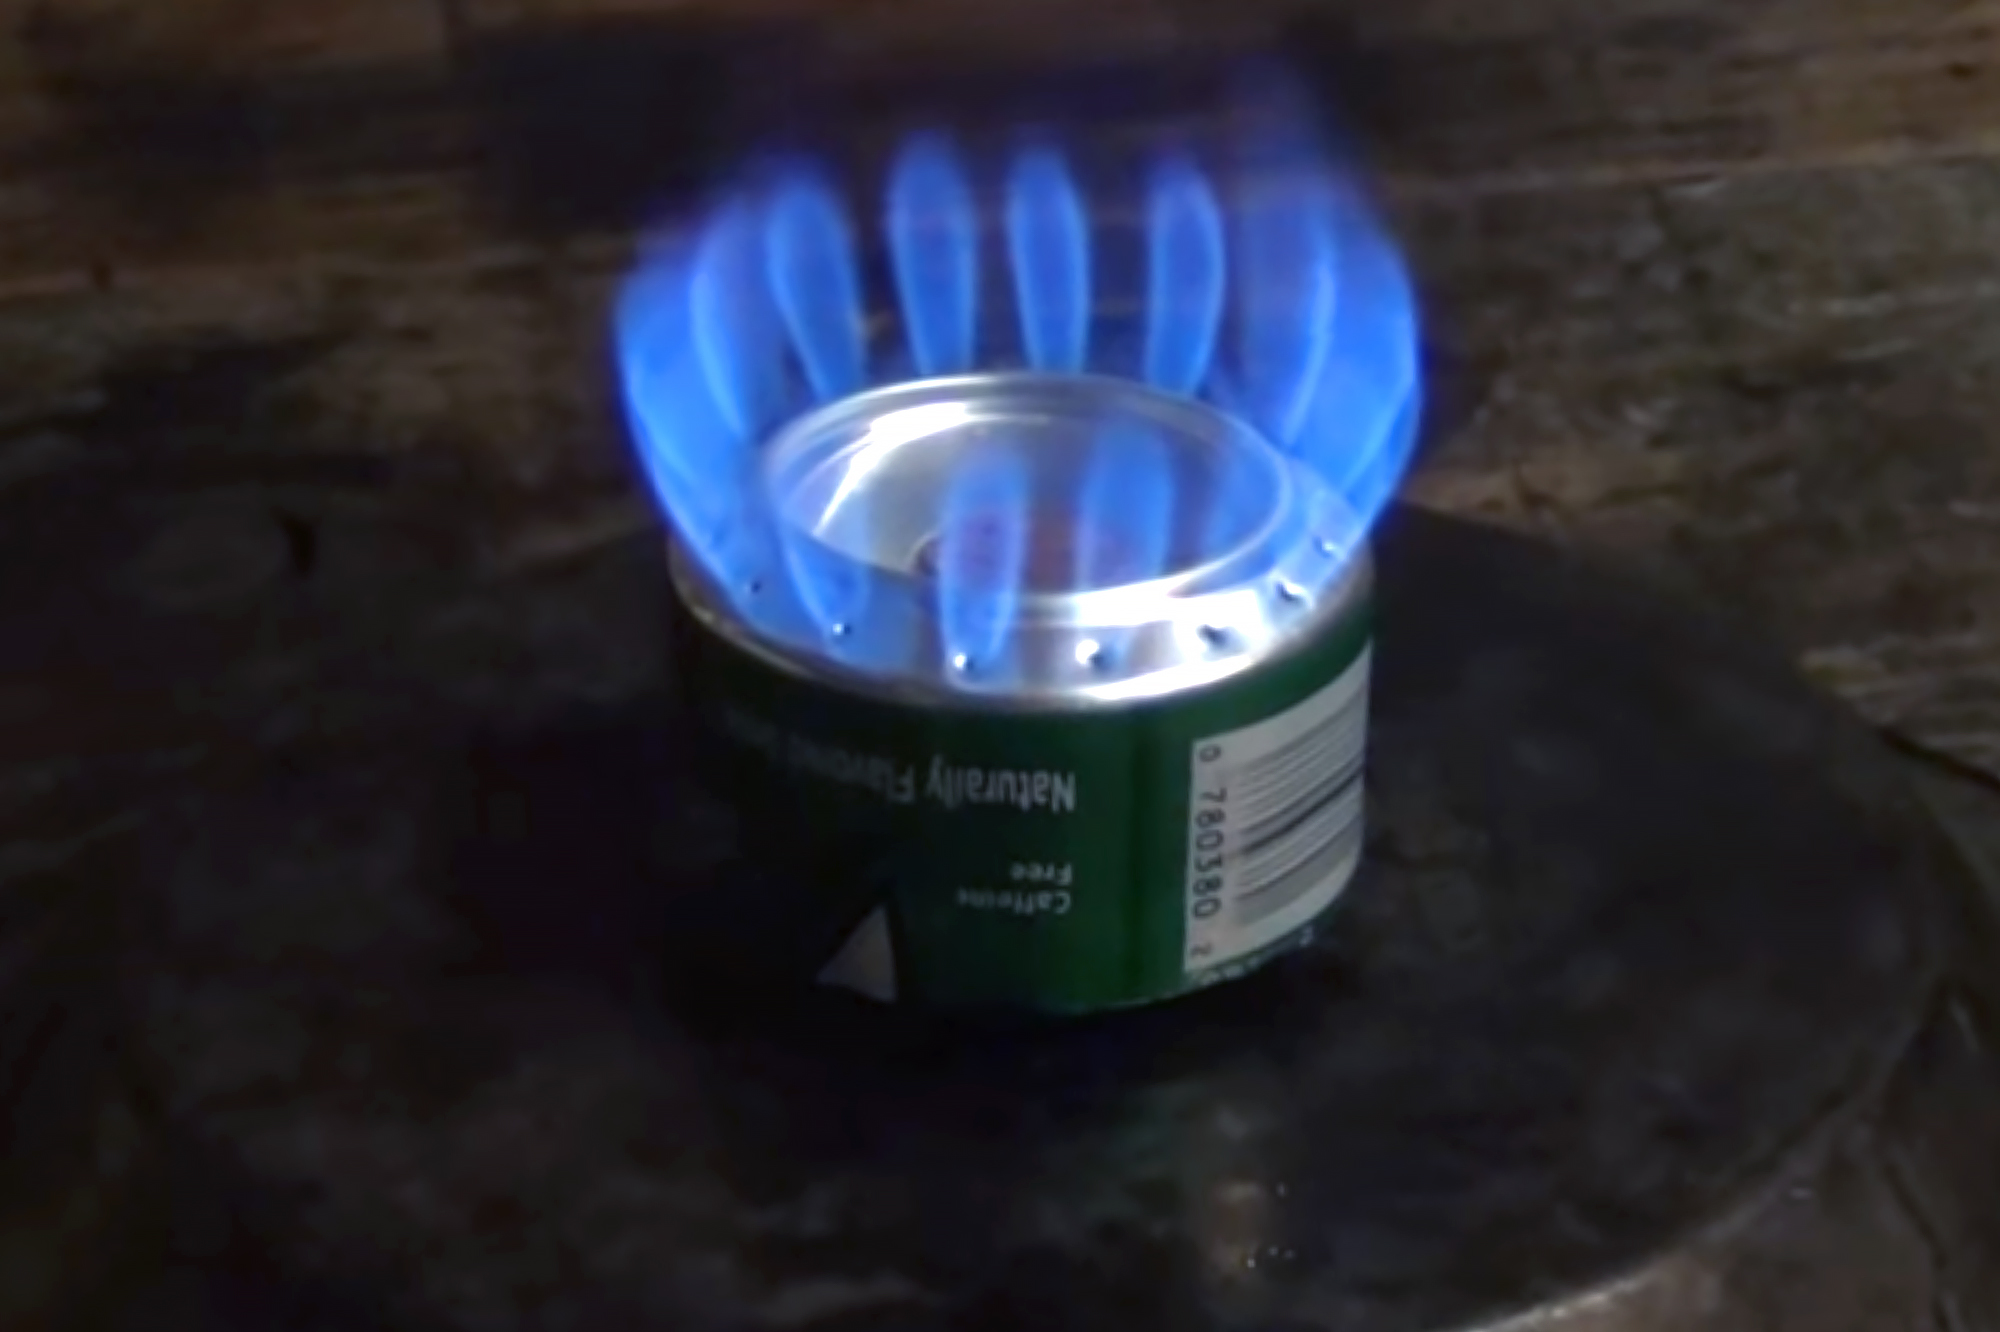 outdoor kitchen kit best cabinet ideas ultralight and efficient penny stove | recoil offgrid